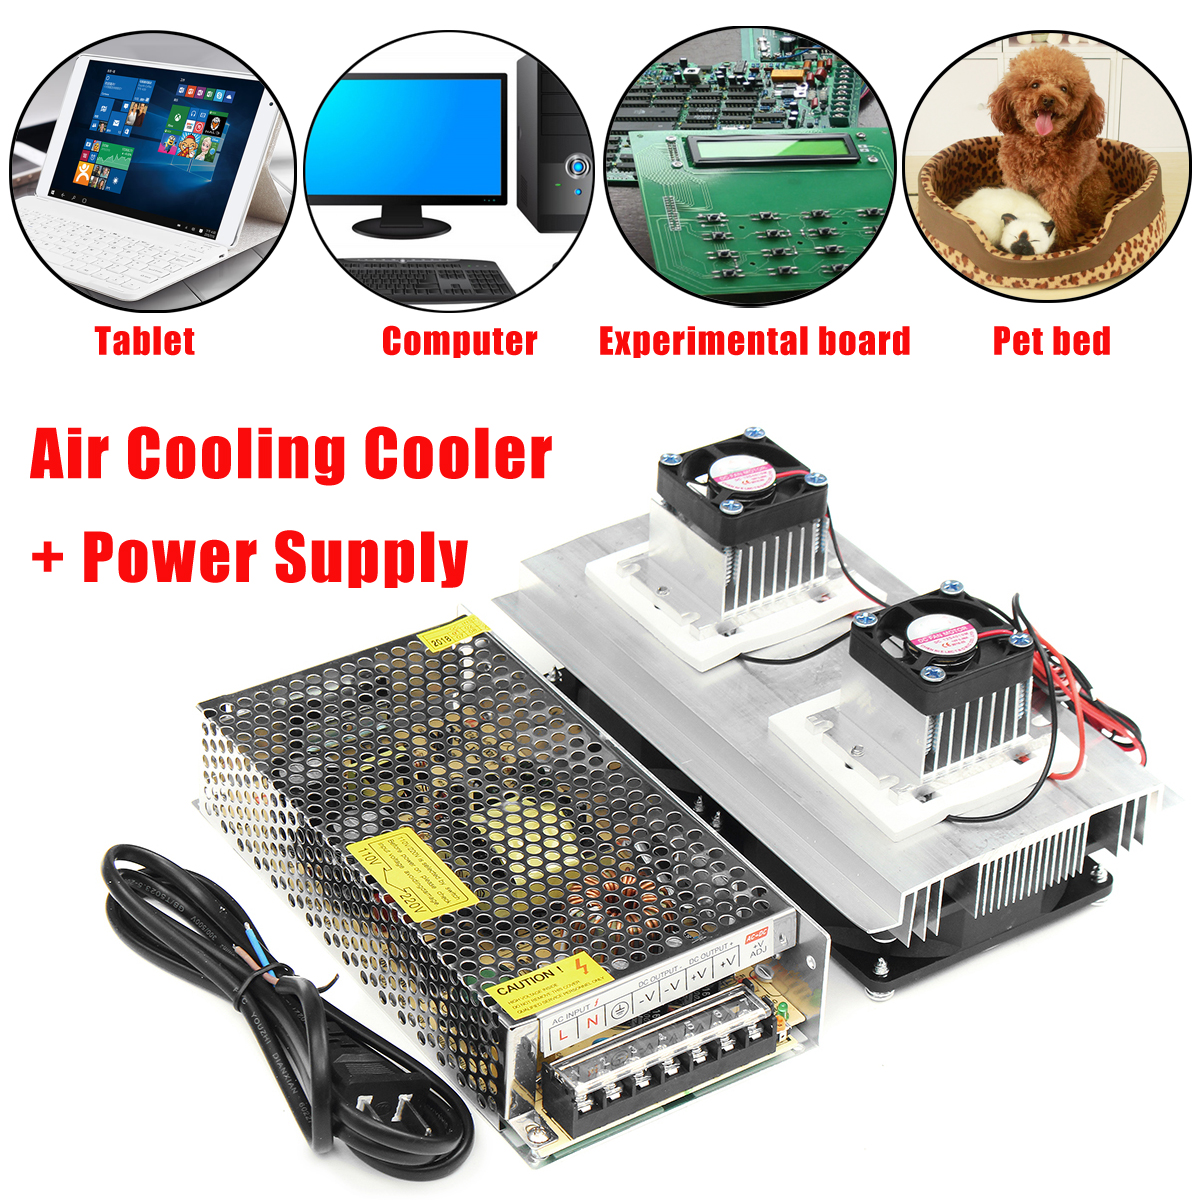 DC12V 120W 2 Core Air Cooling Cooler Refrigeration Thermoelectric Peltier + Power Supply Cooling Equipment Dissipate HeatDC12V 120W 2 Core Air Cooling Cooler Refrigeration Thermoelectric Peltier + Power Supply Cooling Equipment Dissipate Heat